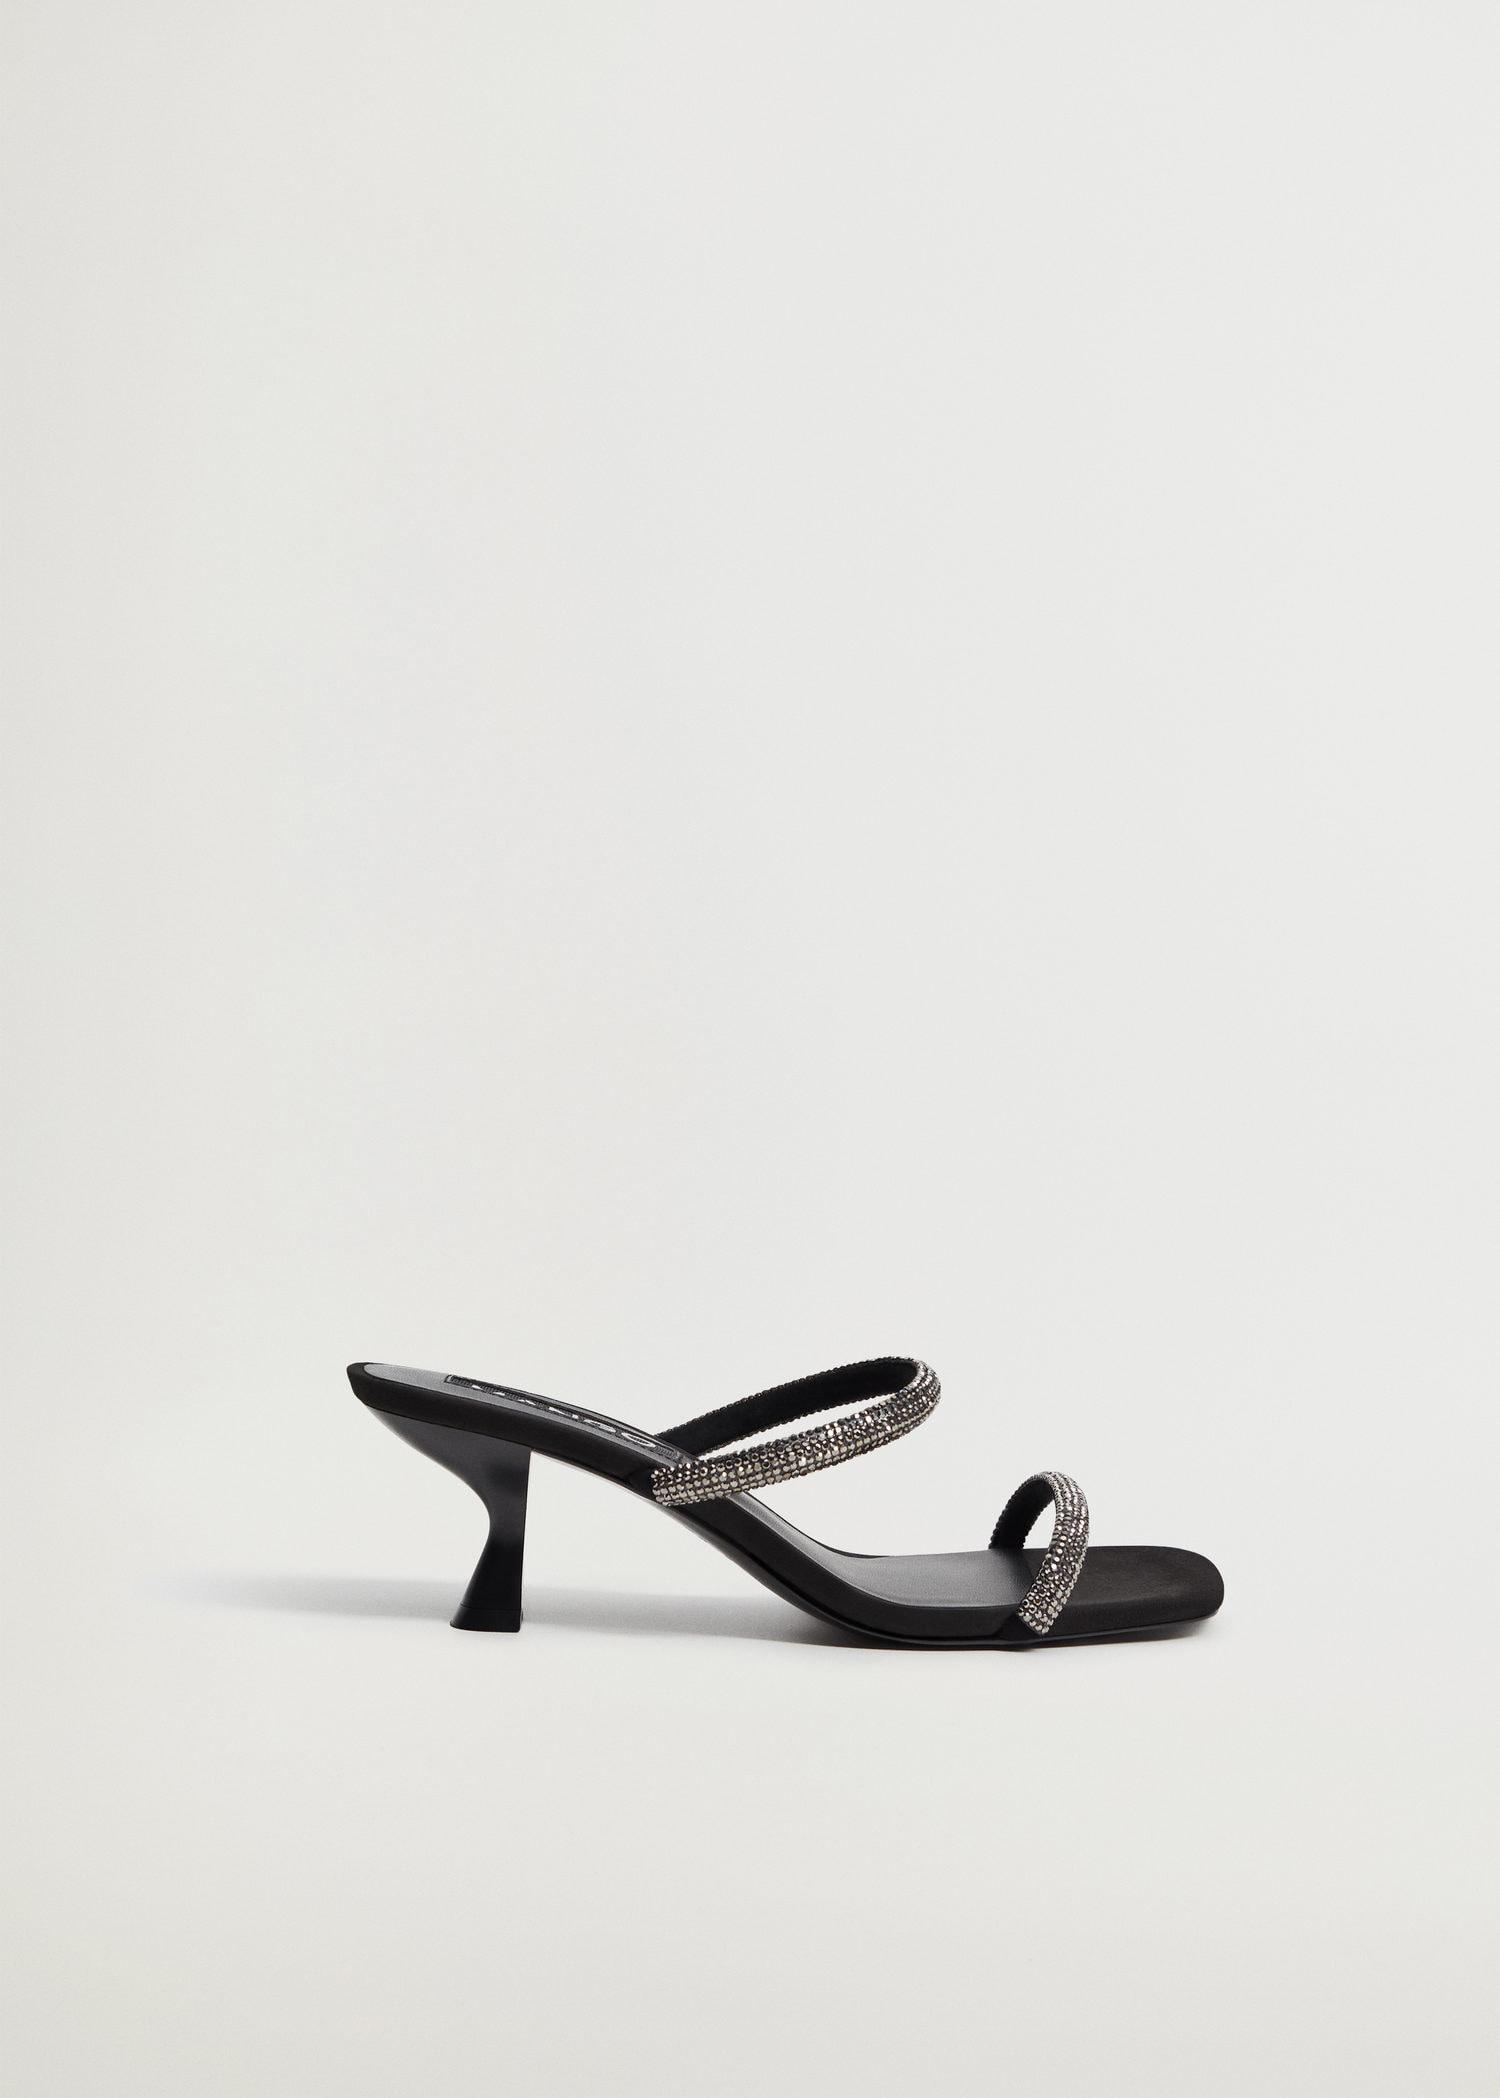 Leather sandals with strass straps